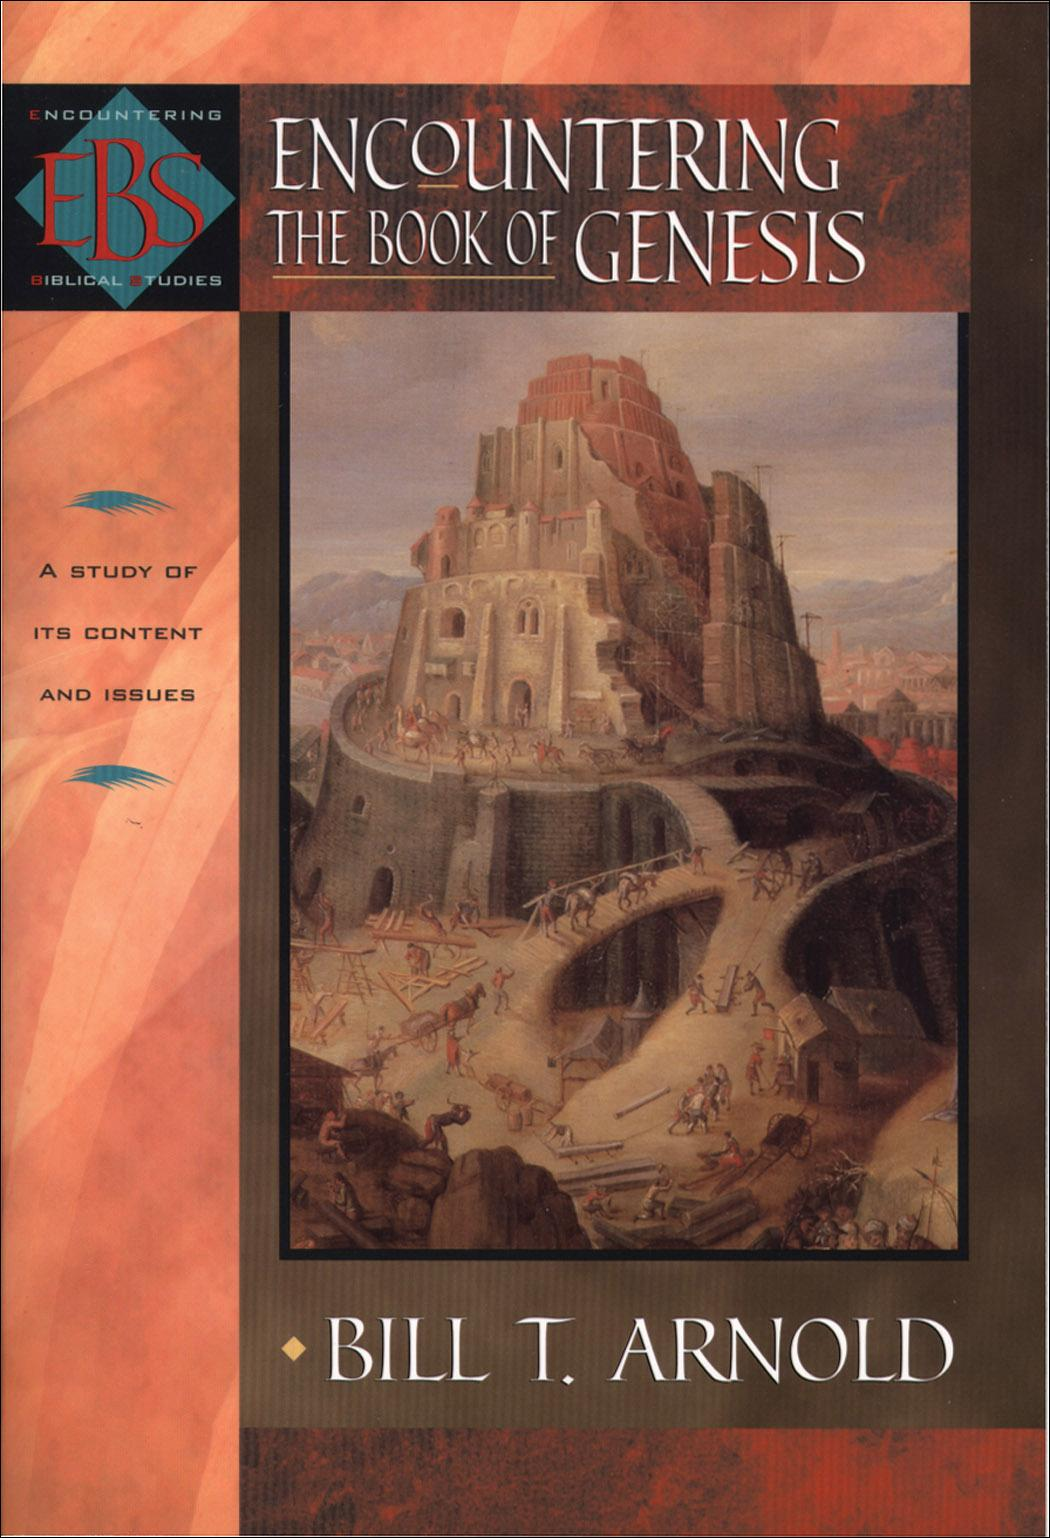 christian studies genesis assignment Over 10 sessions of verse-by-verse study, dive into genesis 1-11 by following three critical stages of understanding: comprehension, interpretation, and application revisit familiar stories and historical figures, challenge your basic knowledge, and discover deeper meanings in the text.